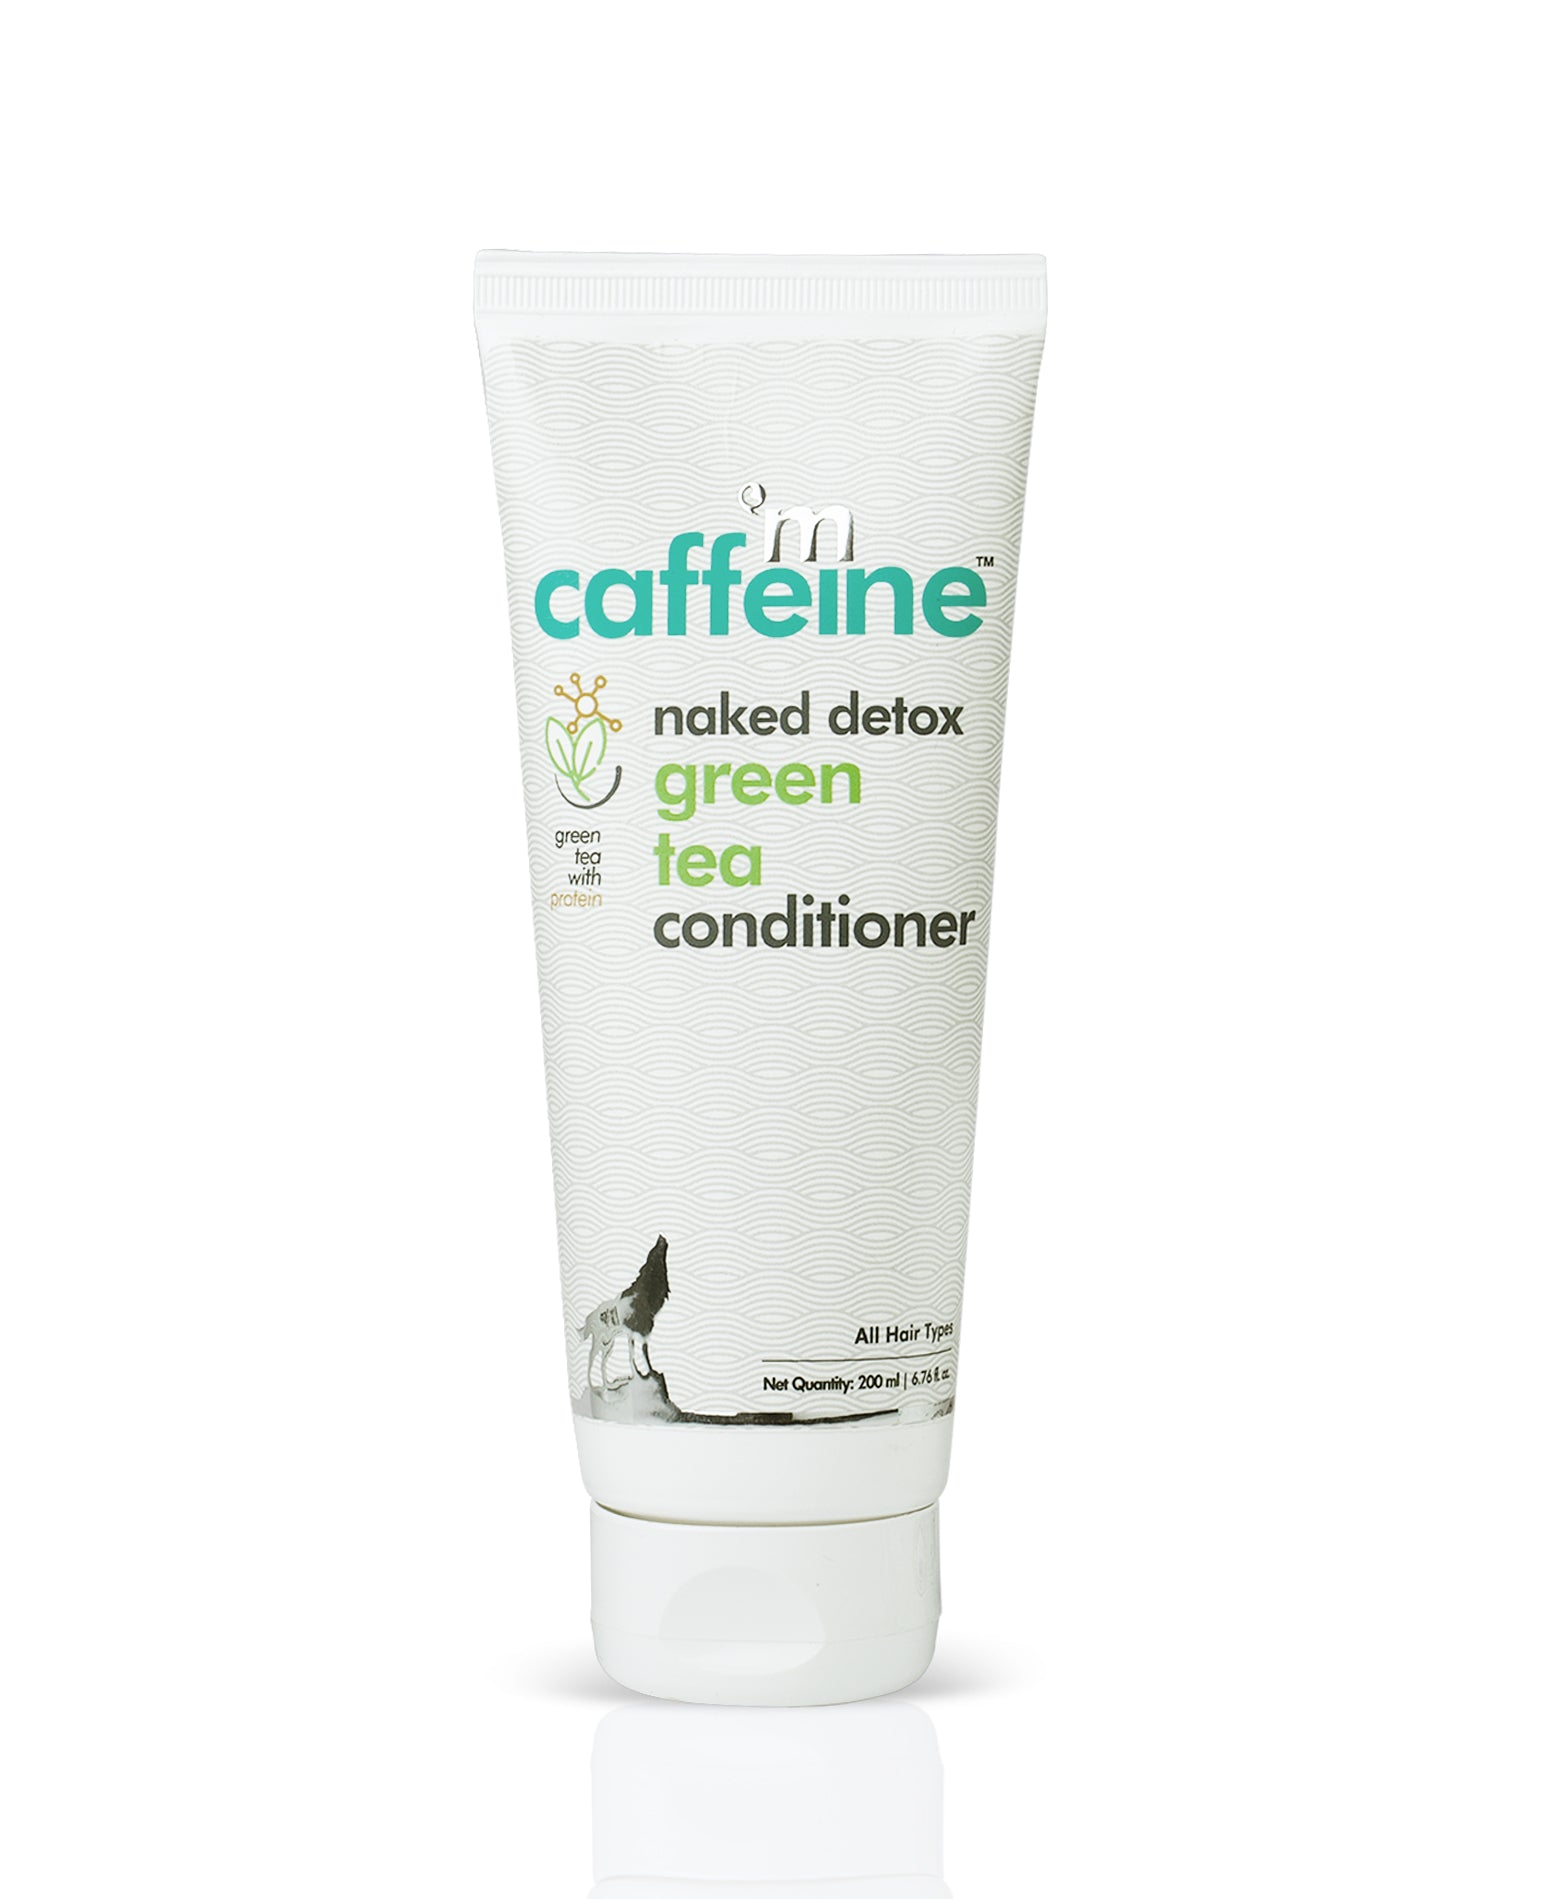 Naked Detox Green Tea Conditioner with Protein, 200 ml - SLS & Paraben Free